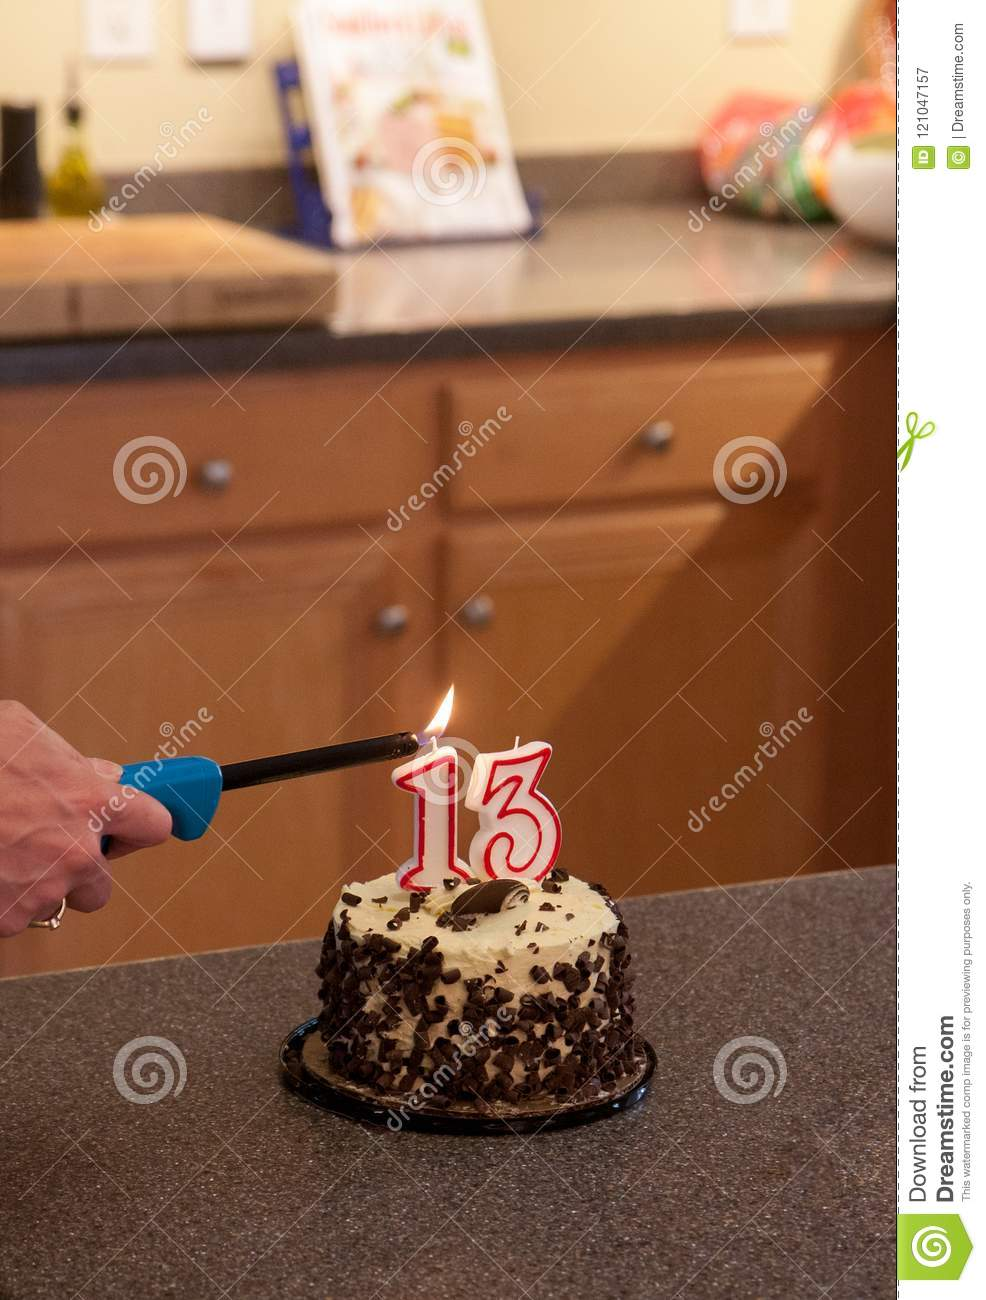 Surprising Birthday Cake For The 13 Year Old Stock Image Image Of Cream Funny Birthday Cards Online Inifodamsfinfo